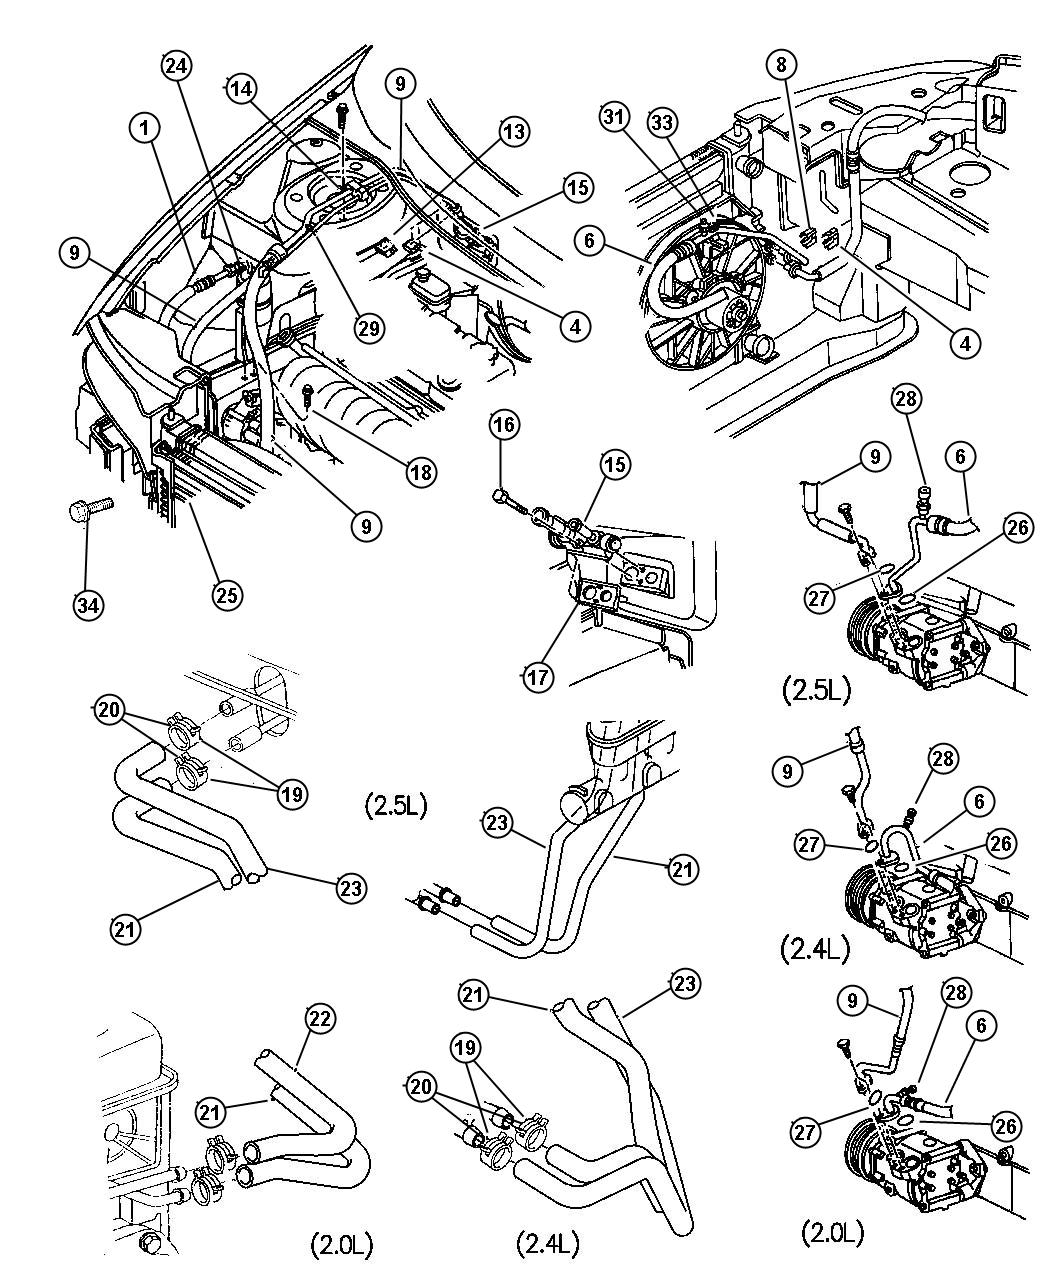 hight resolution of  1996 plymouth breeze fuse box diagram imageresizertool com 2000 jeep grand cherokee fuse diagram